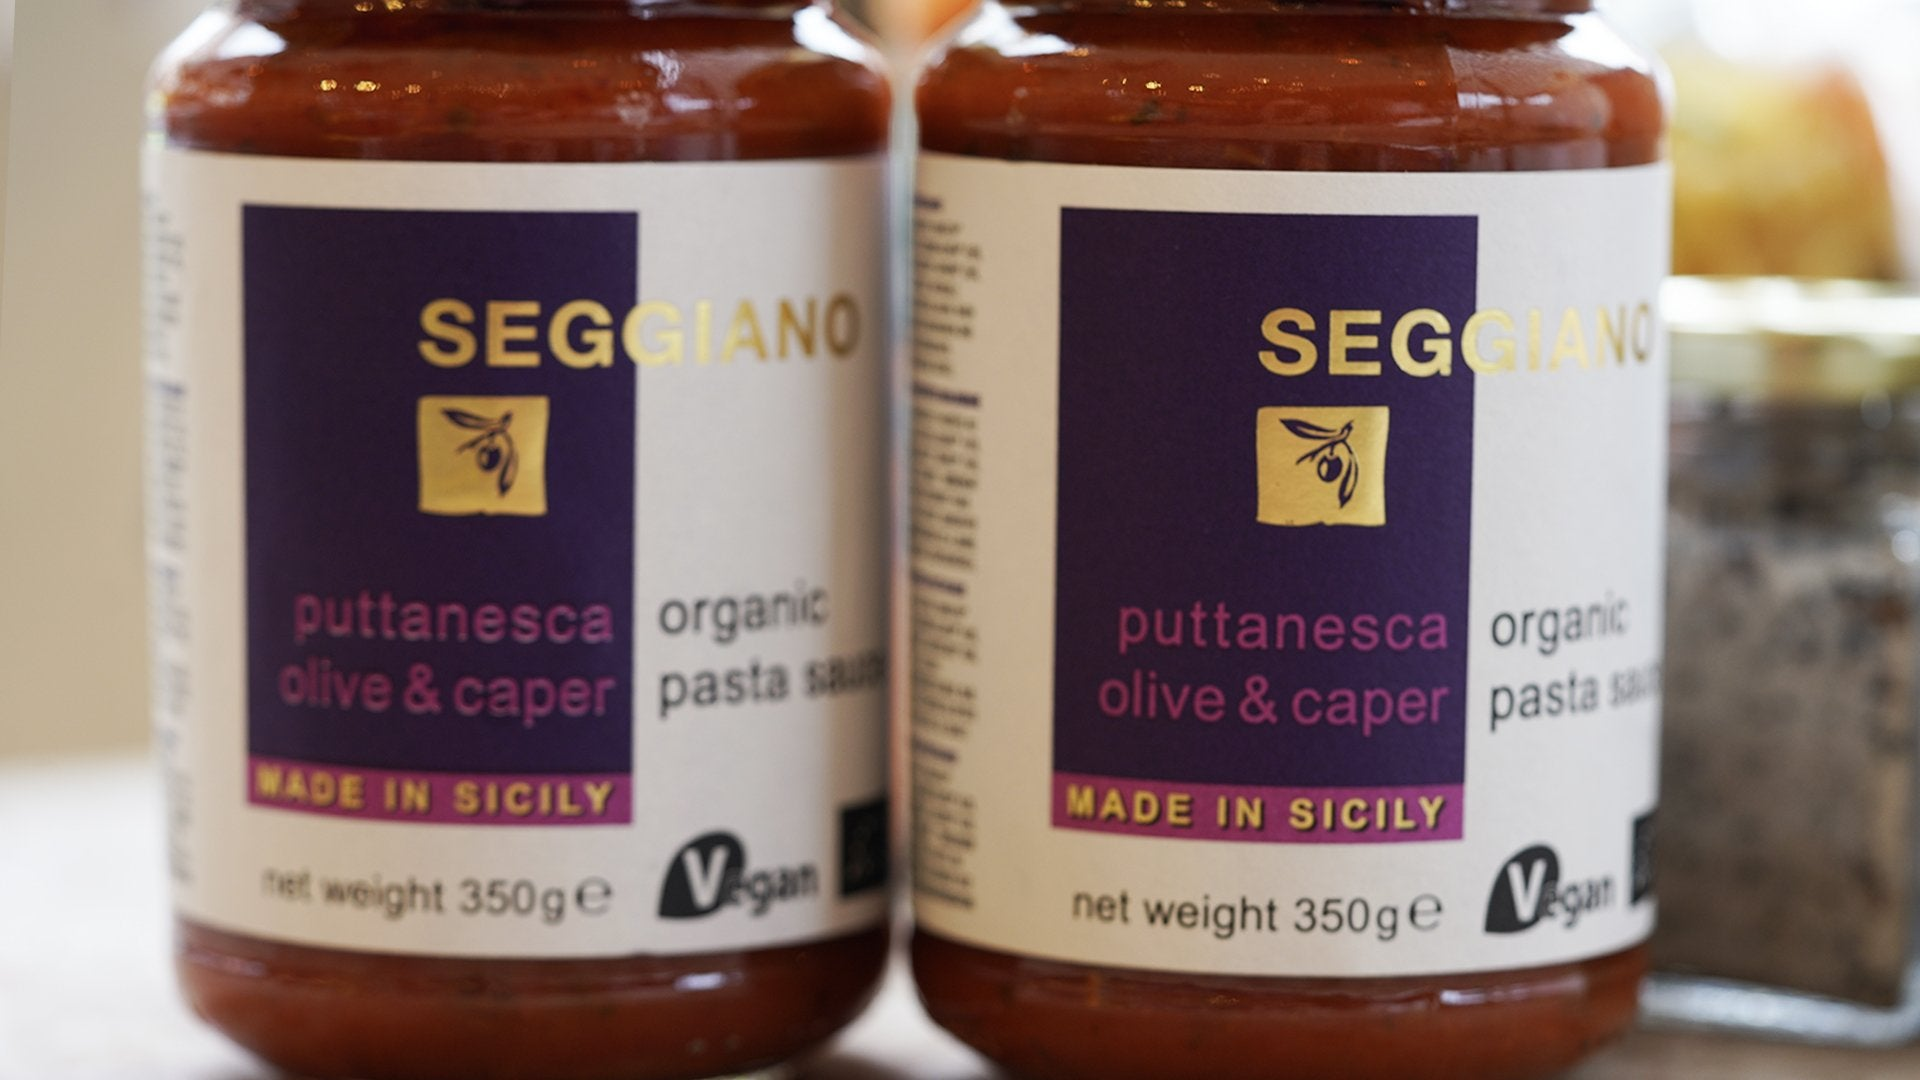 Seggiano Puttanesca Pasta Sauce for sale - Parsons Nose